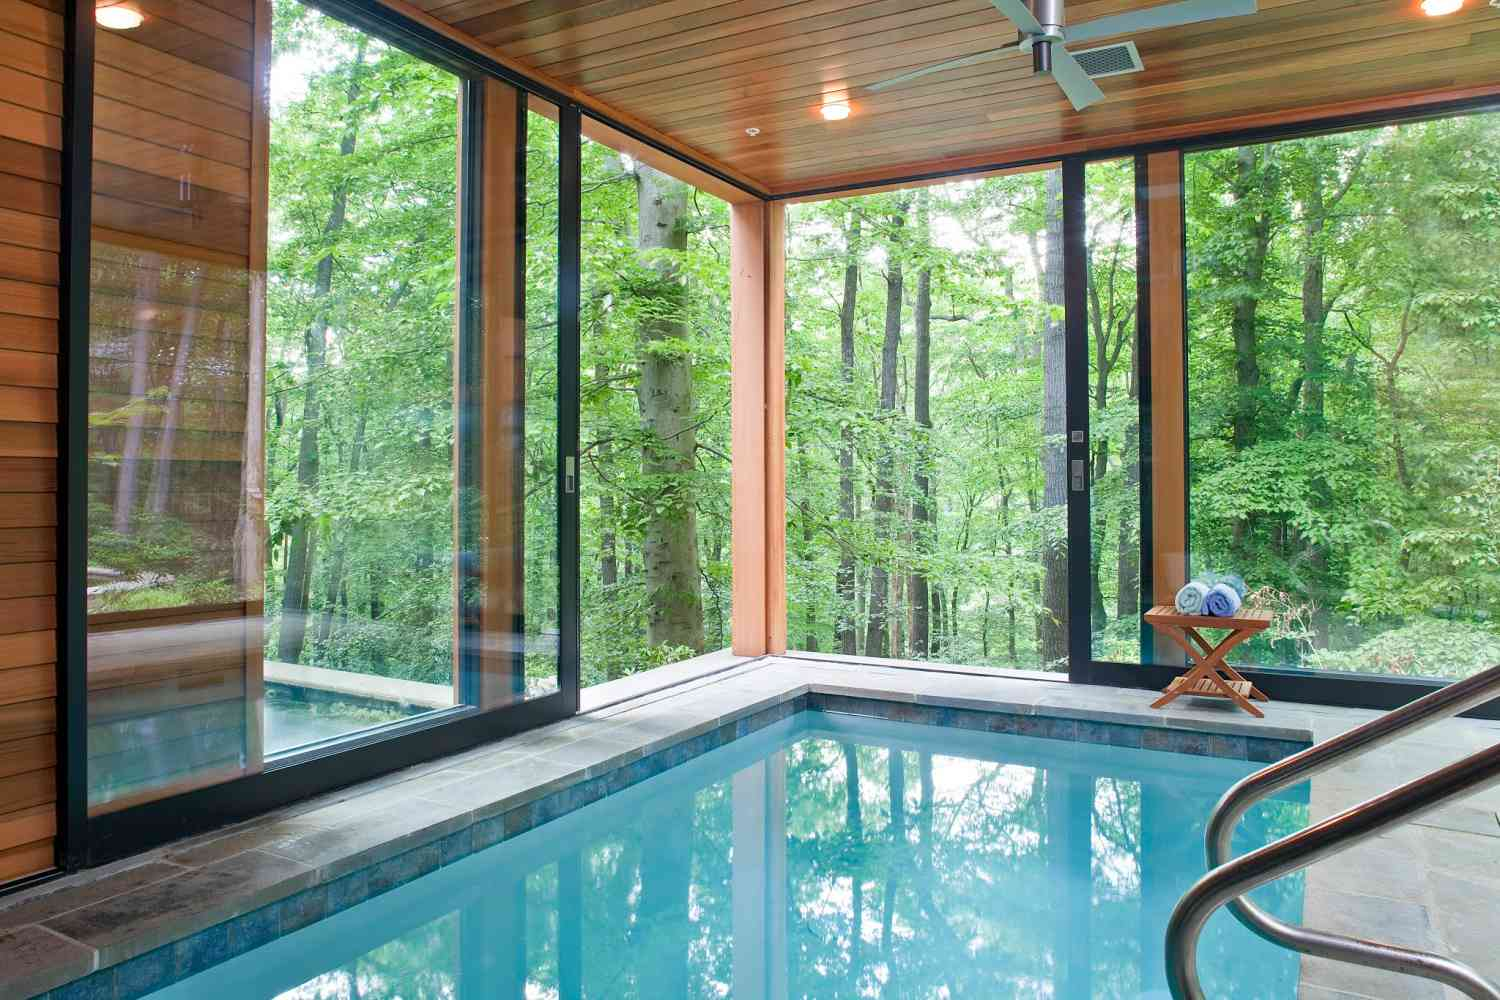 Indoor Pool With View of the Woods